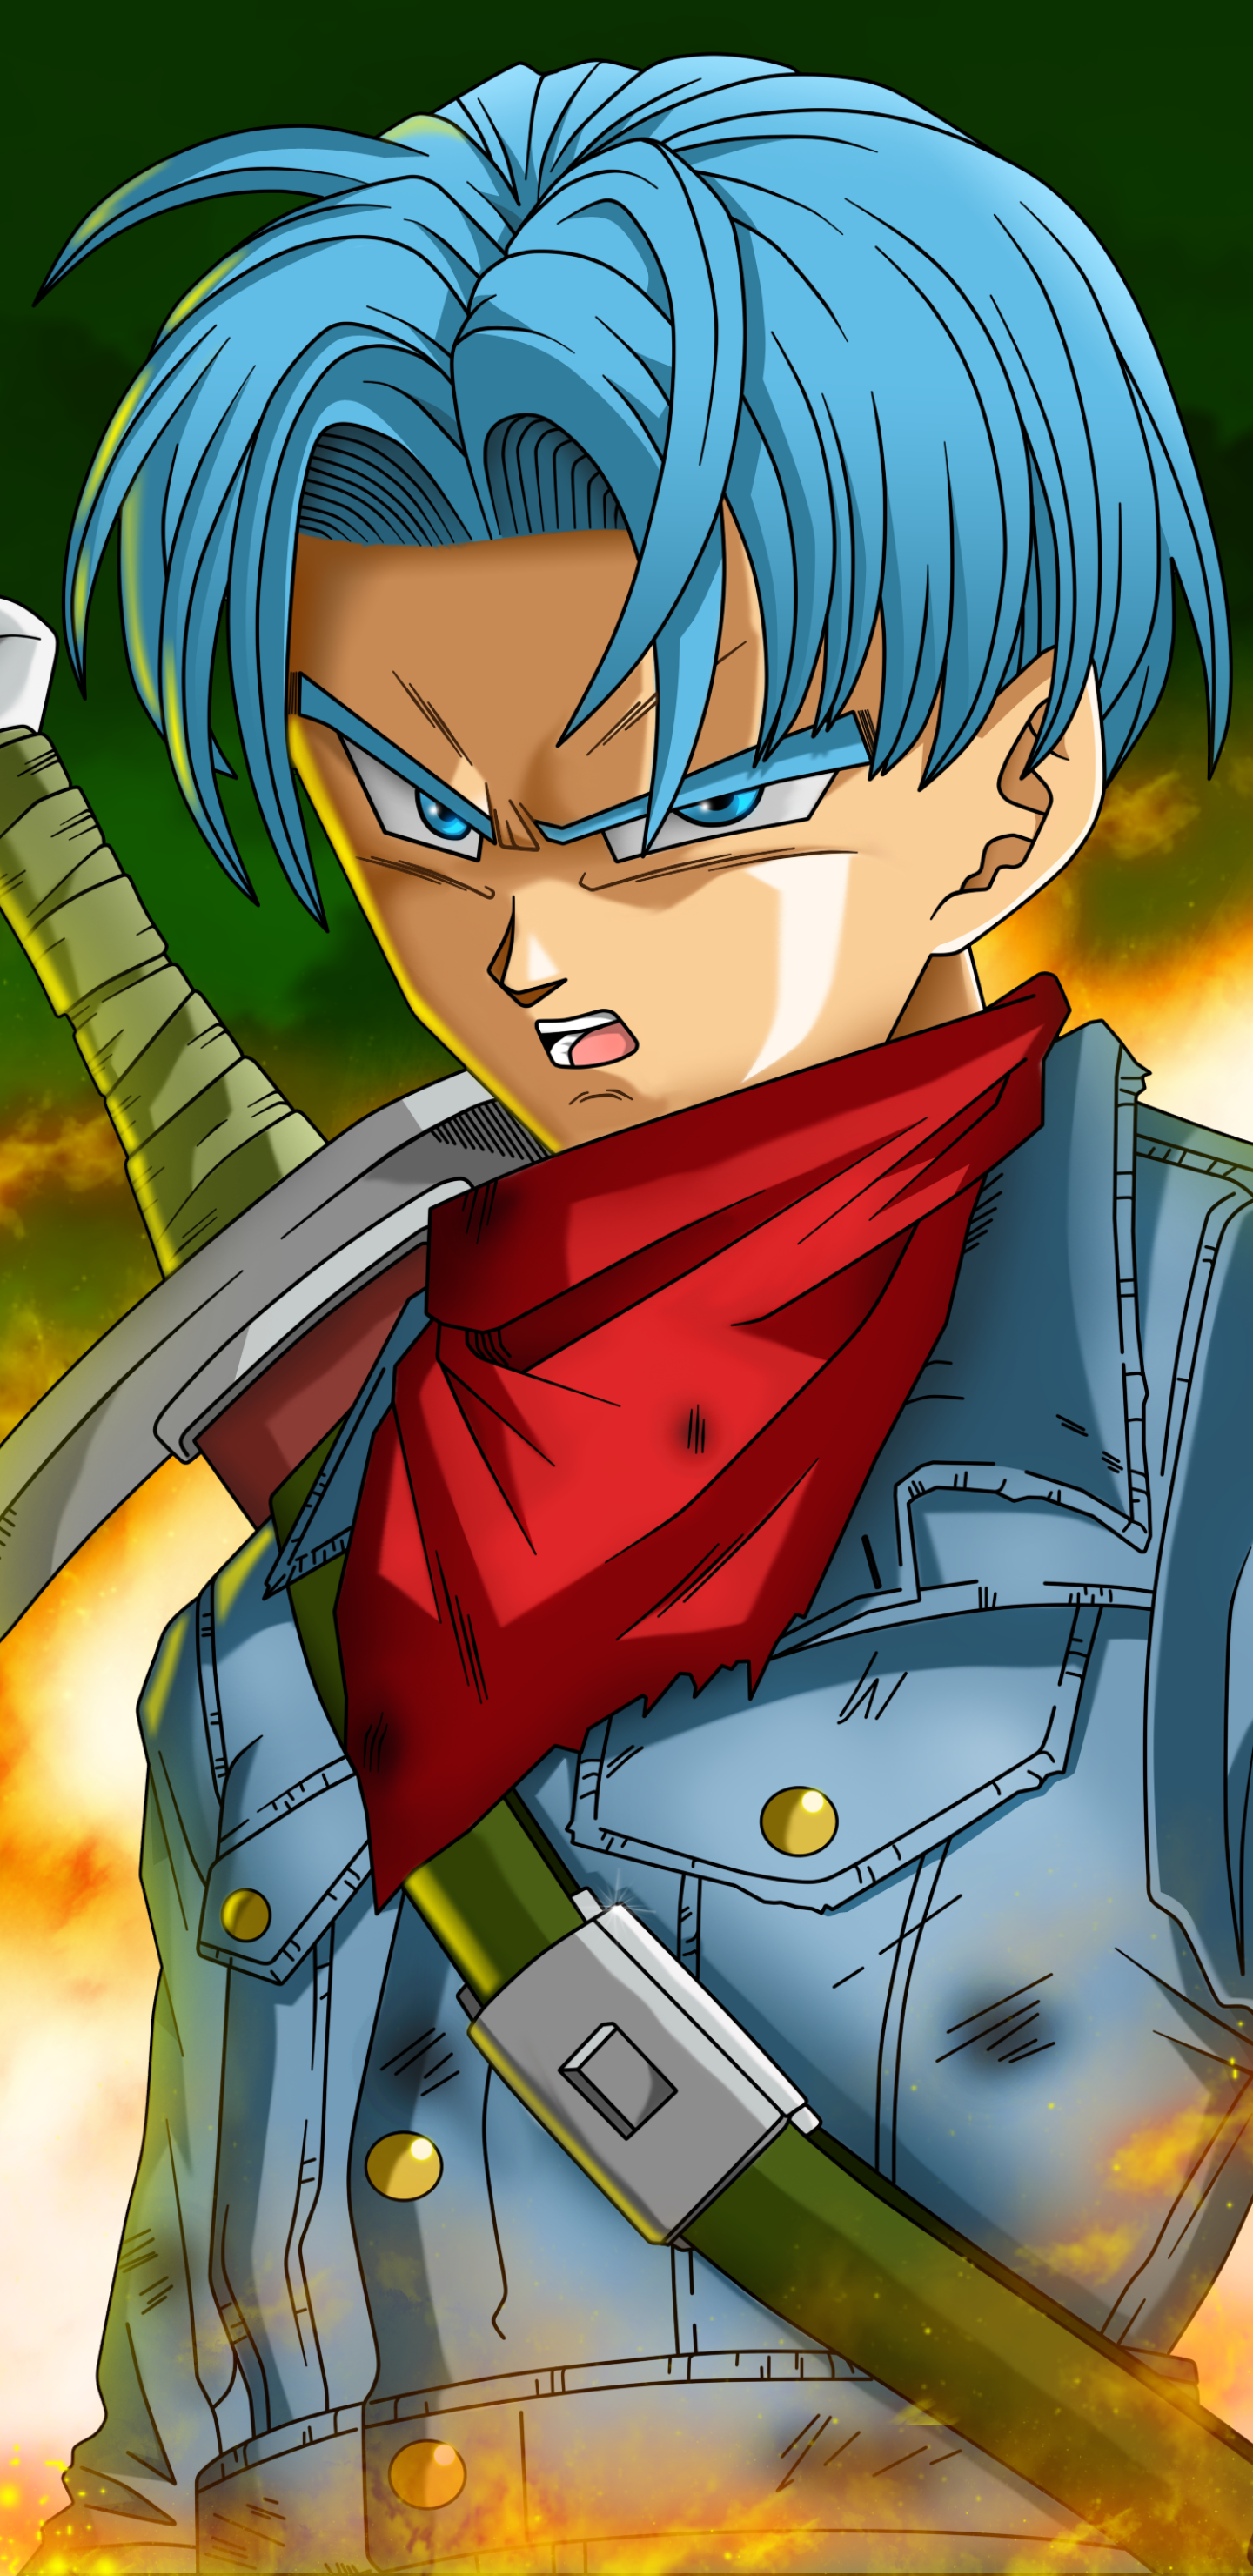 Download this Wallpaper Anime/Dragon Ball Super (1440x2960